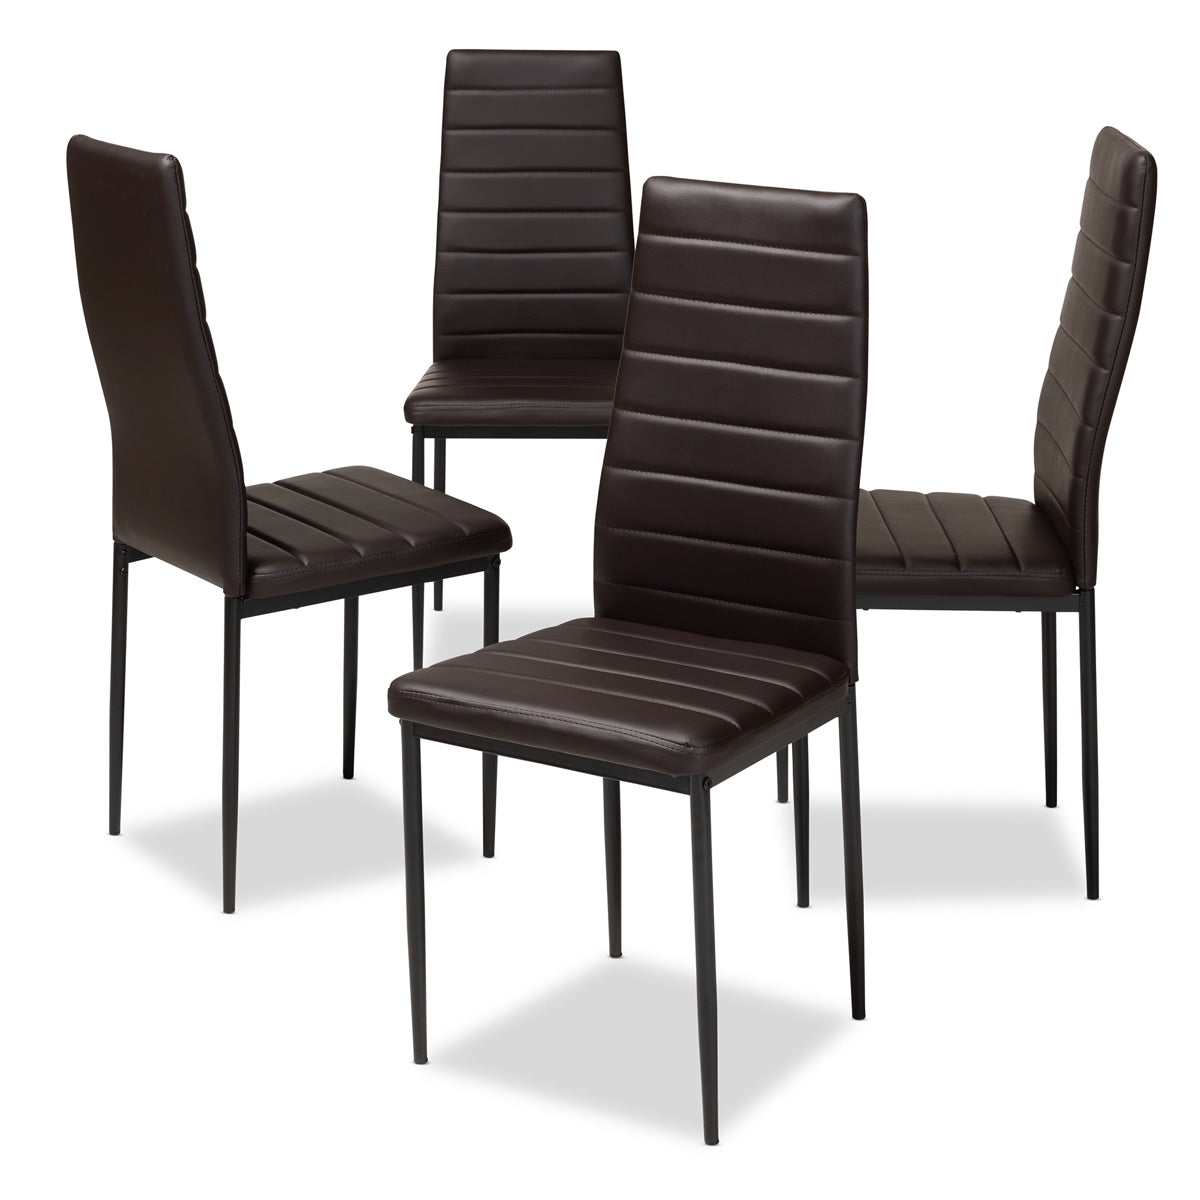 Baxton Studio Armand Modern and Contemporary Brown Faux Leather Upholstered Dining Chair (Set of 4) Baxton Studio-dining chair-Minimal And Modern - 1